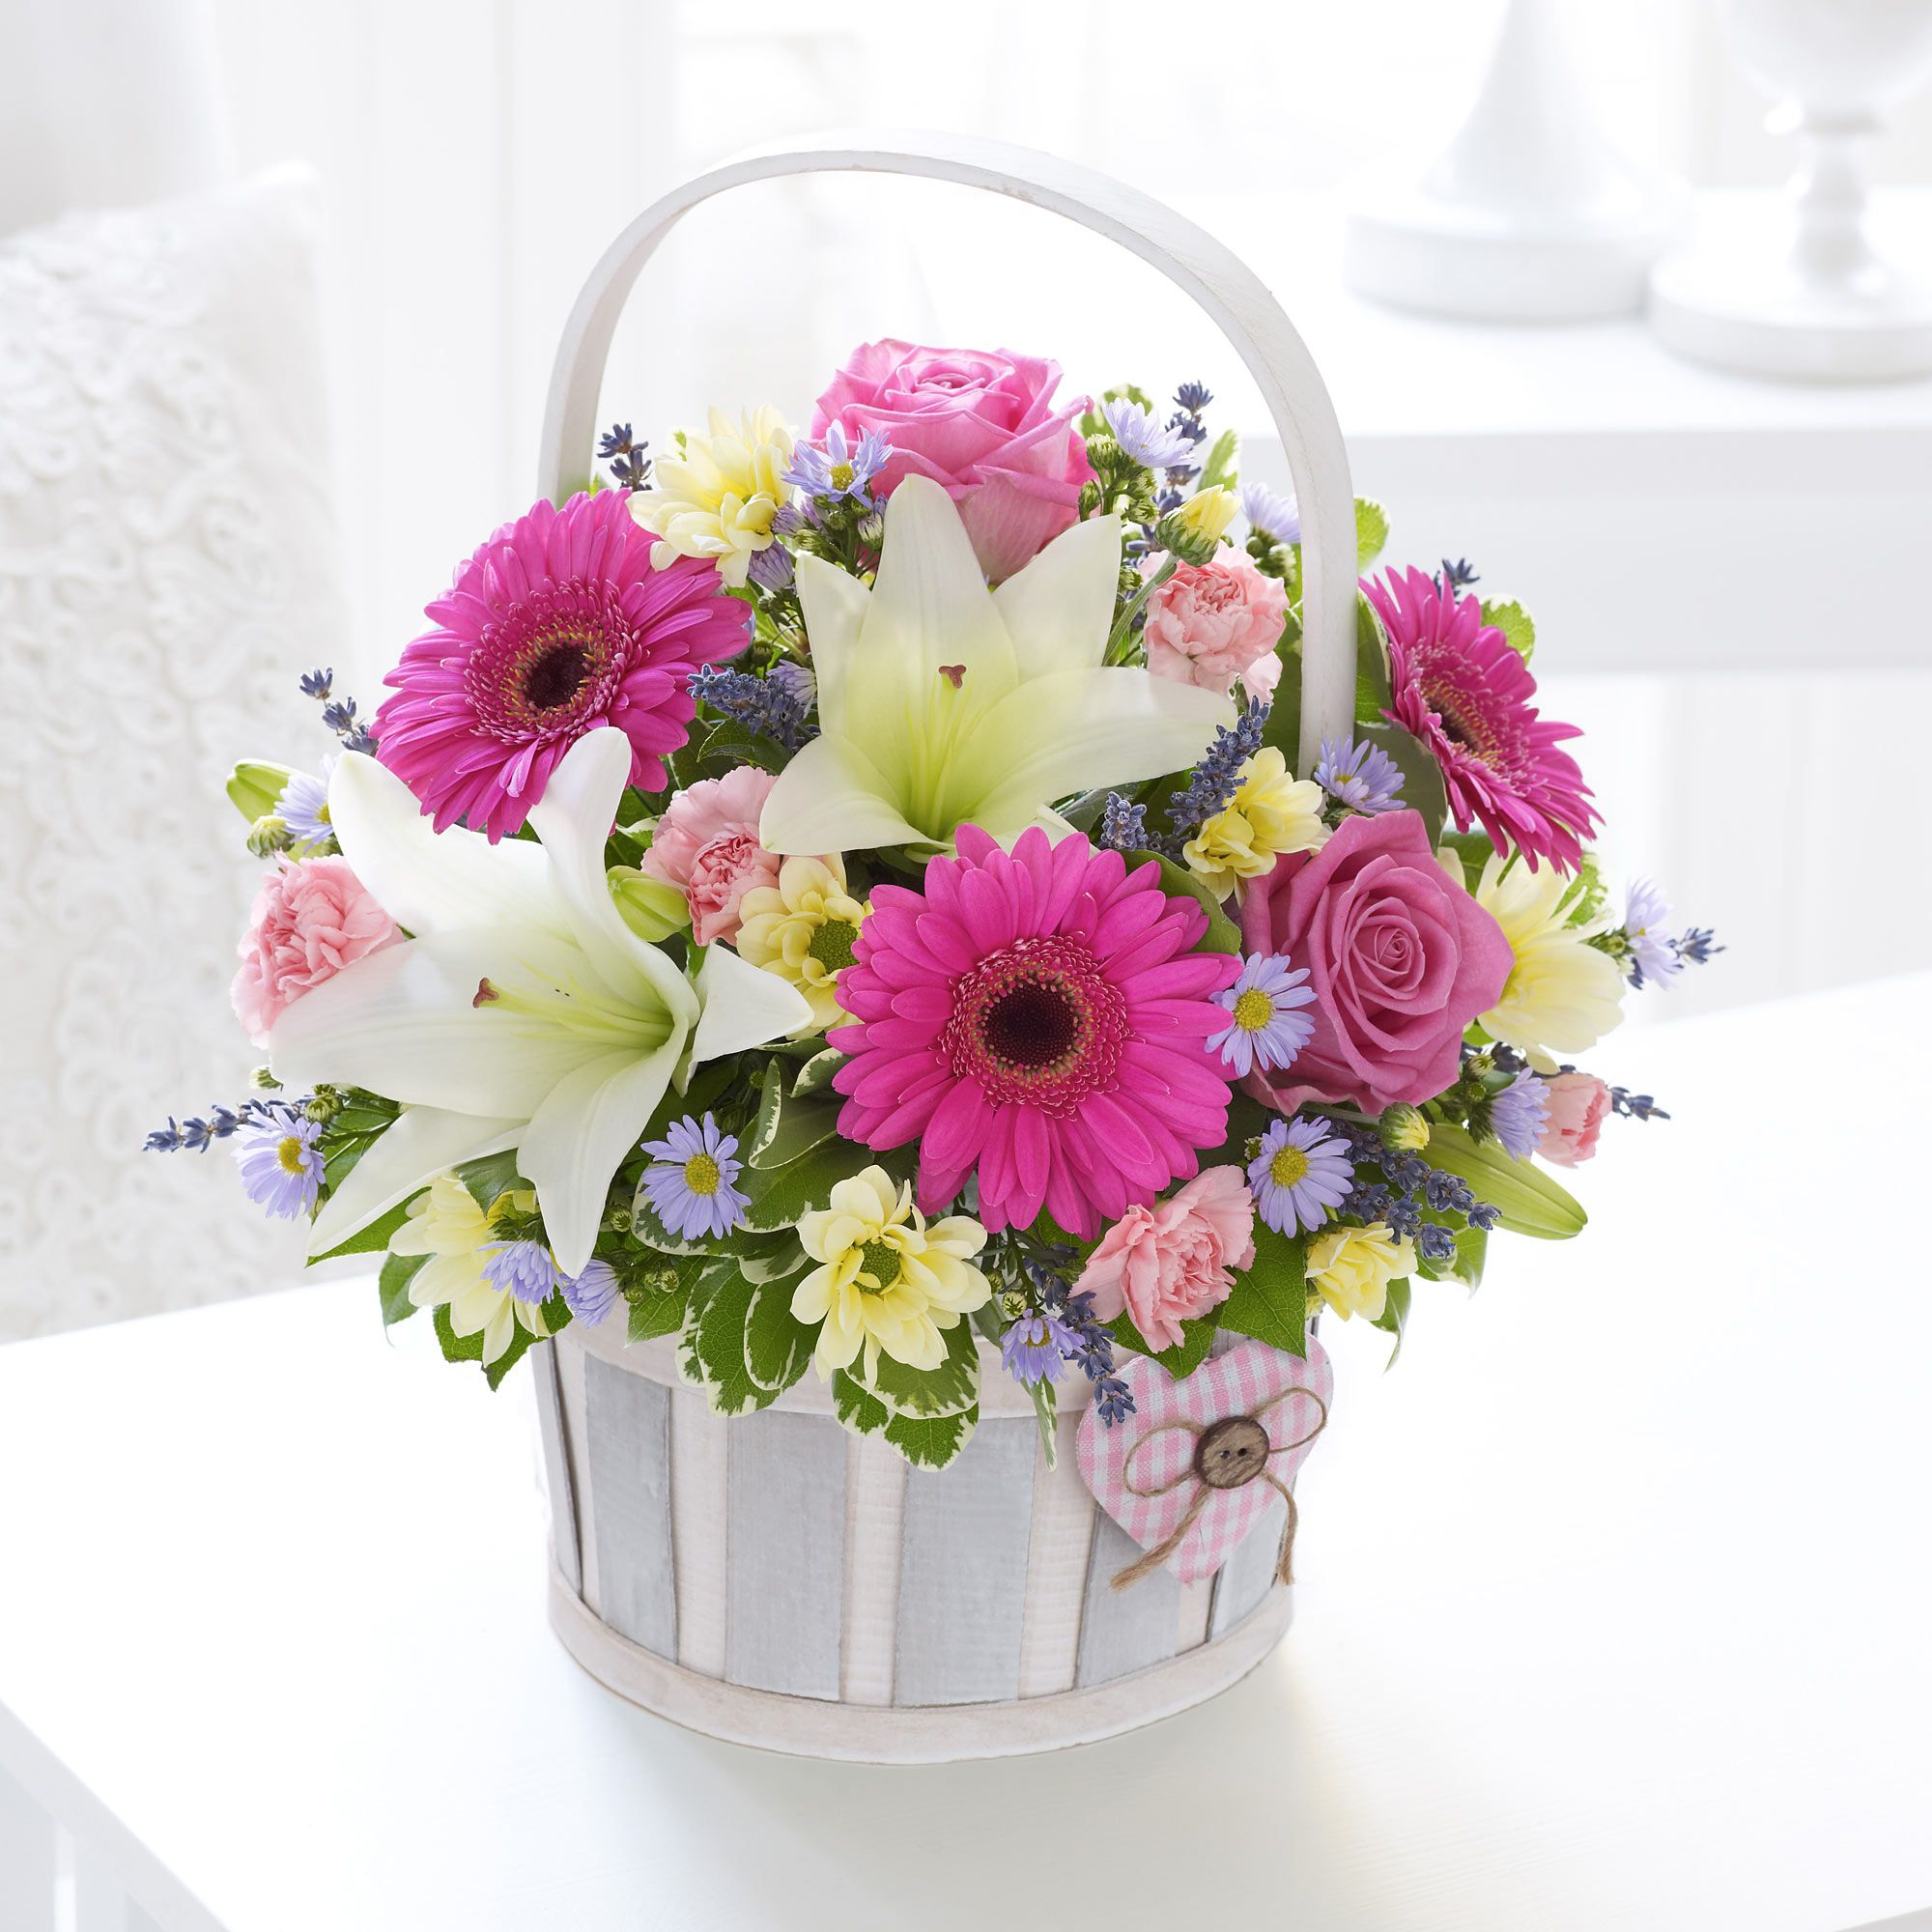 New parents will love receiving this basket arrangement to